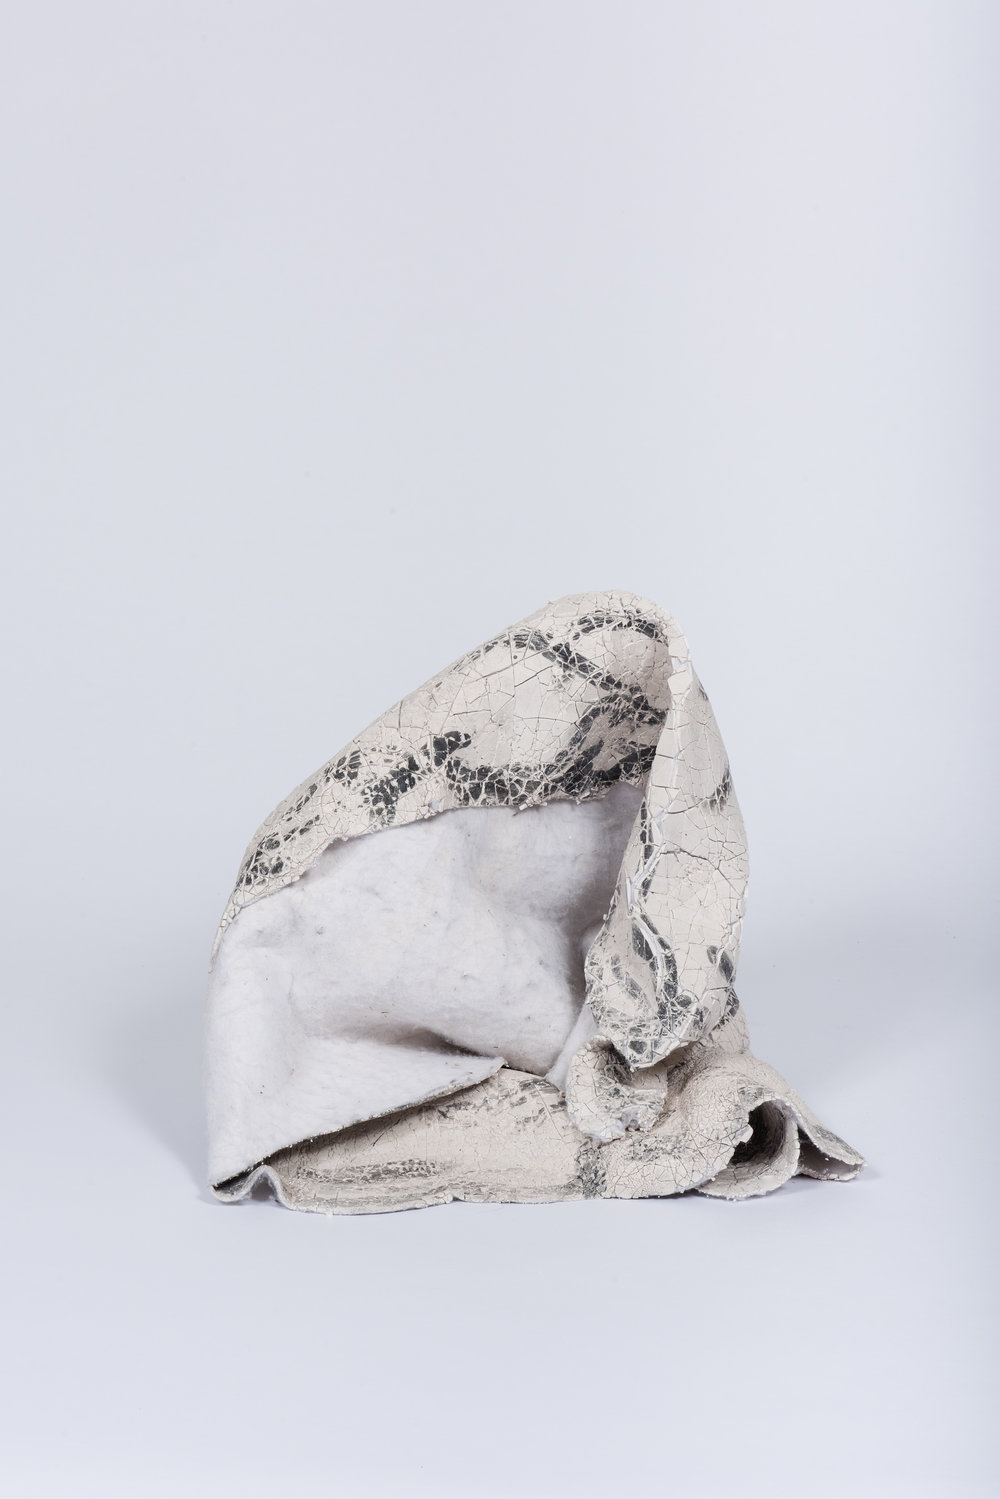 One of Manion's felt sculptures. Image courtesy of the artist.